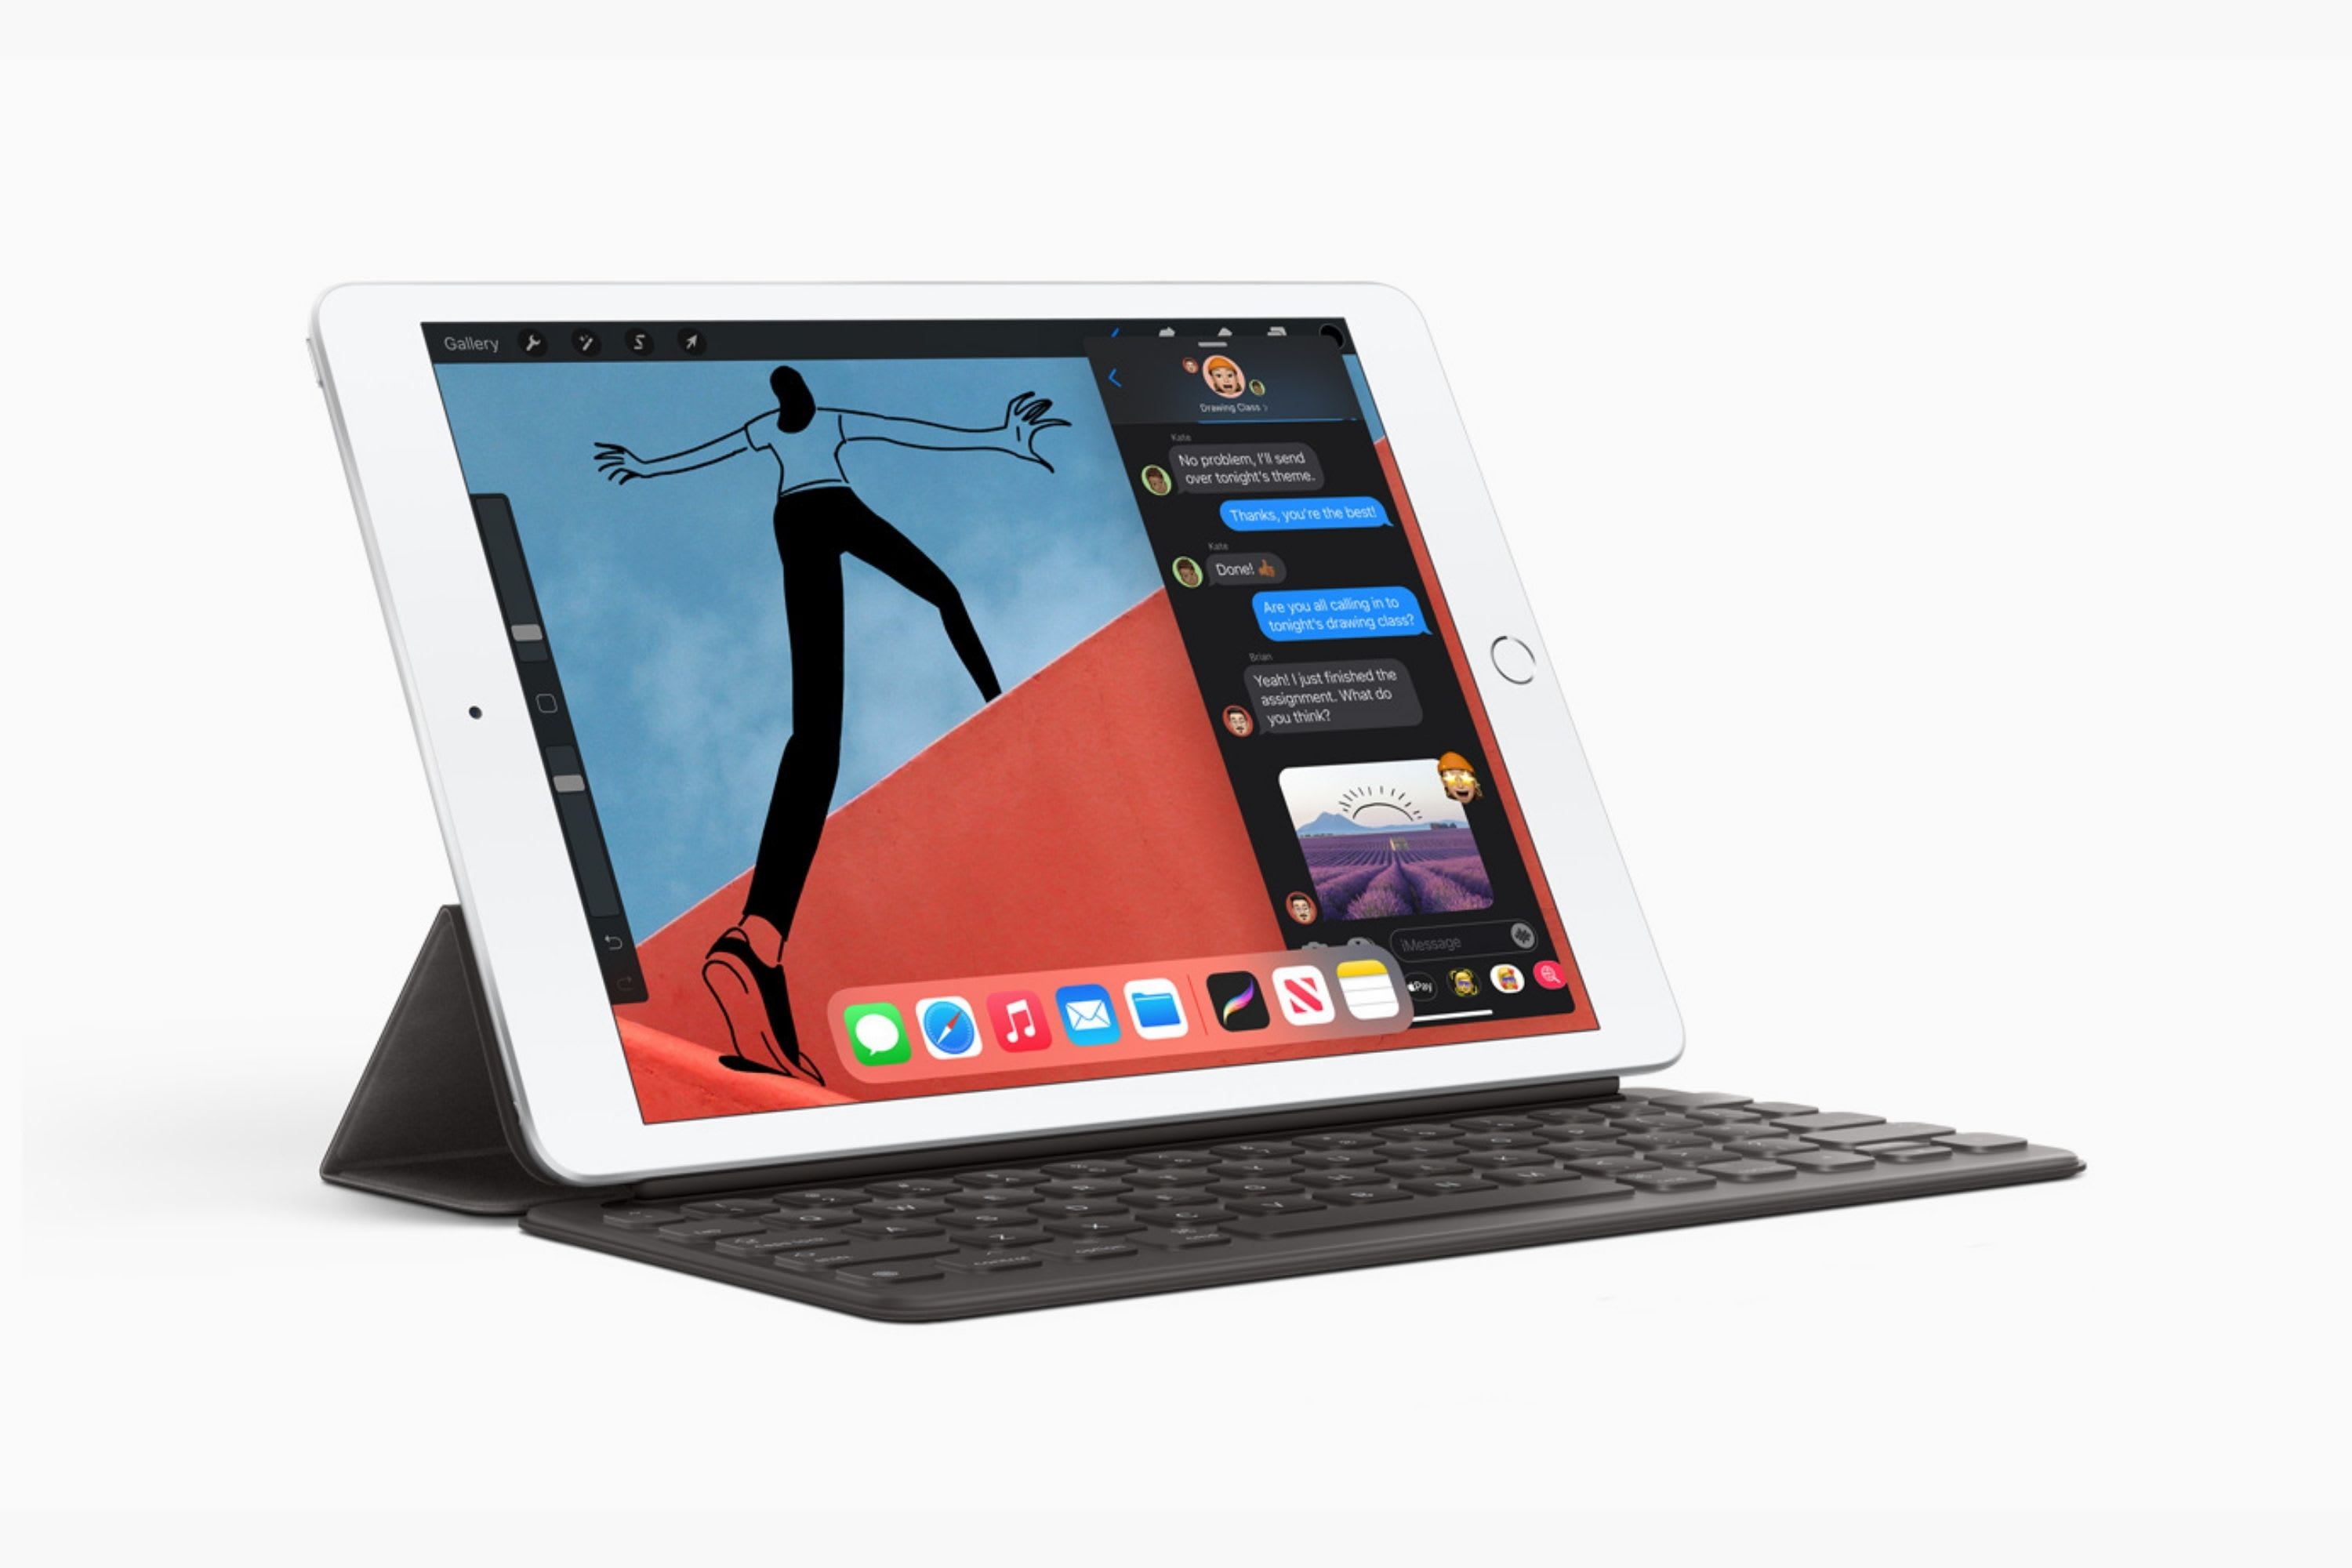 2020-ipad-8th-gen-uses-upgraded-a12-bionic-chip-with-more-keyboard-compatibility-options-20200915-2